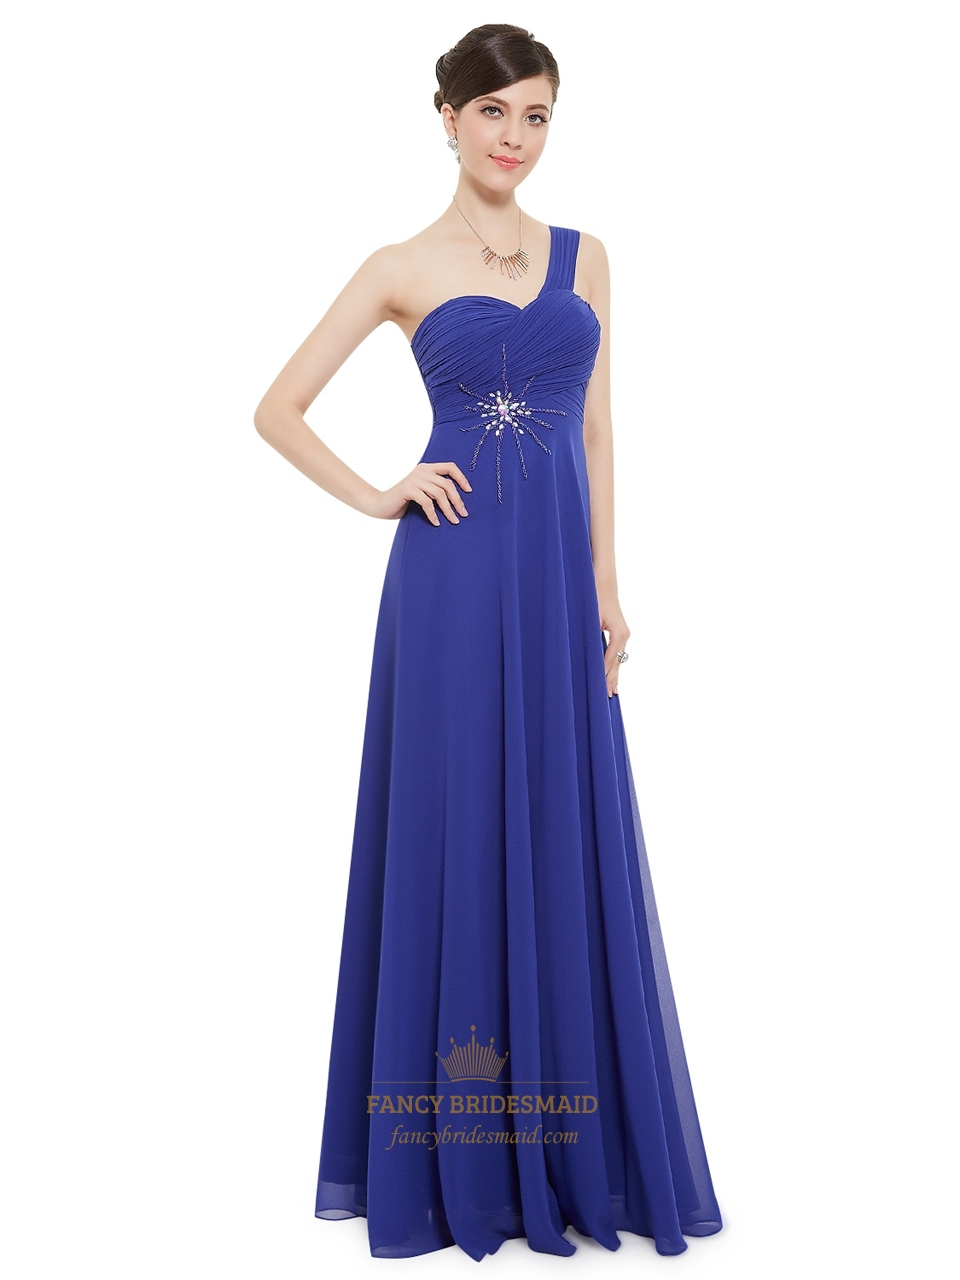 2019 year lifestyle- Blue royal bridesmaid dresses chiffon